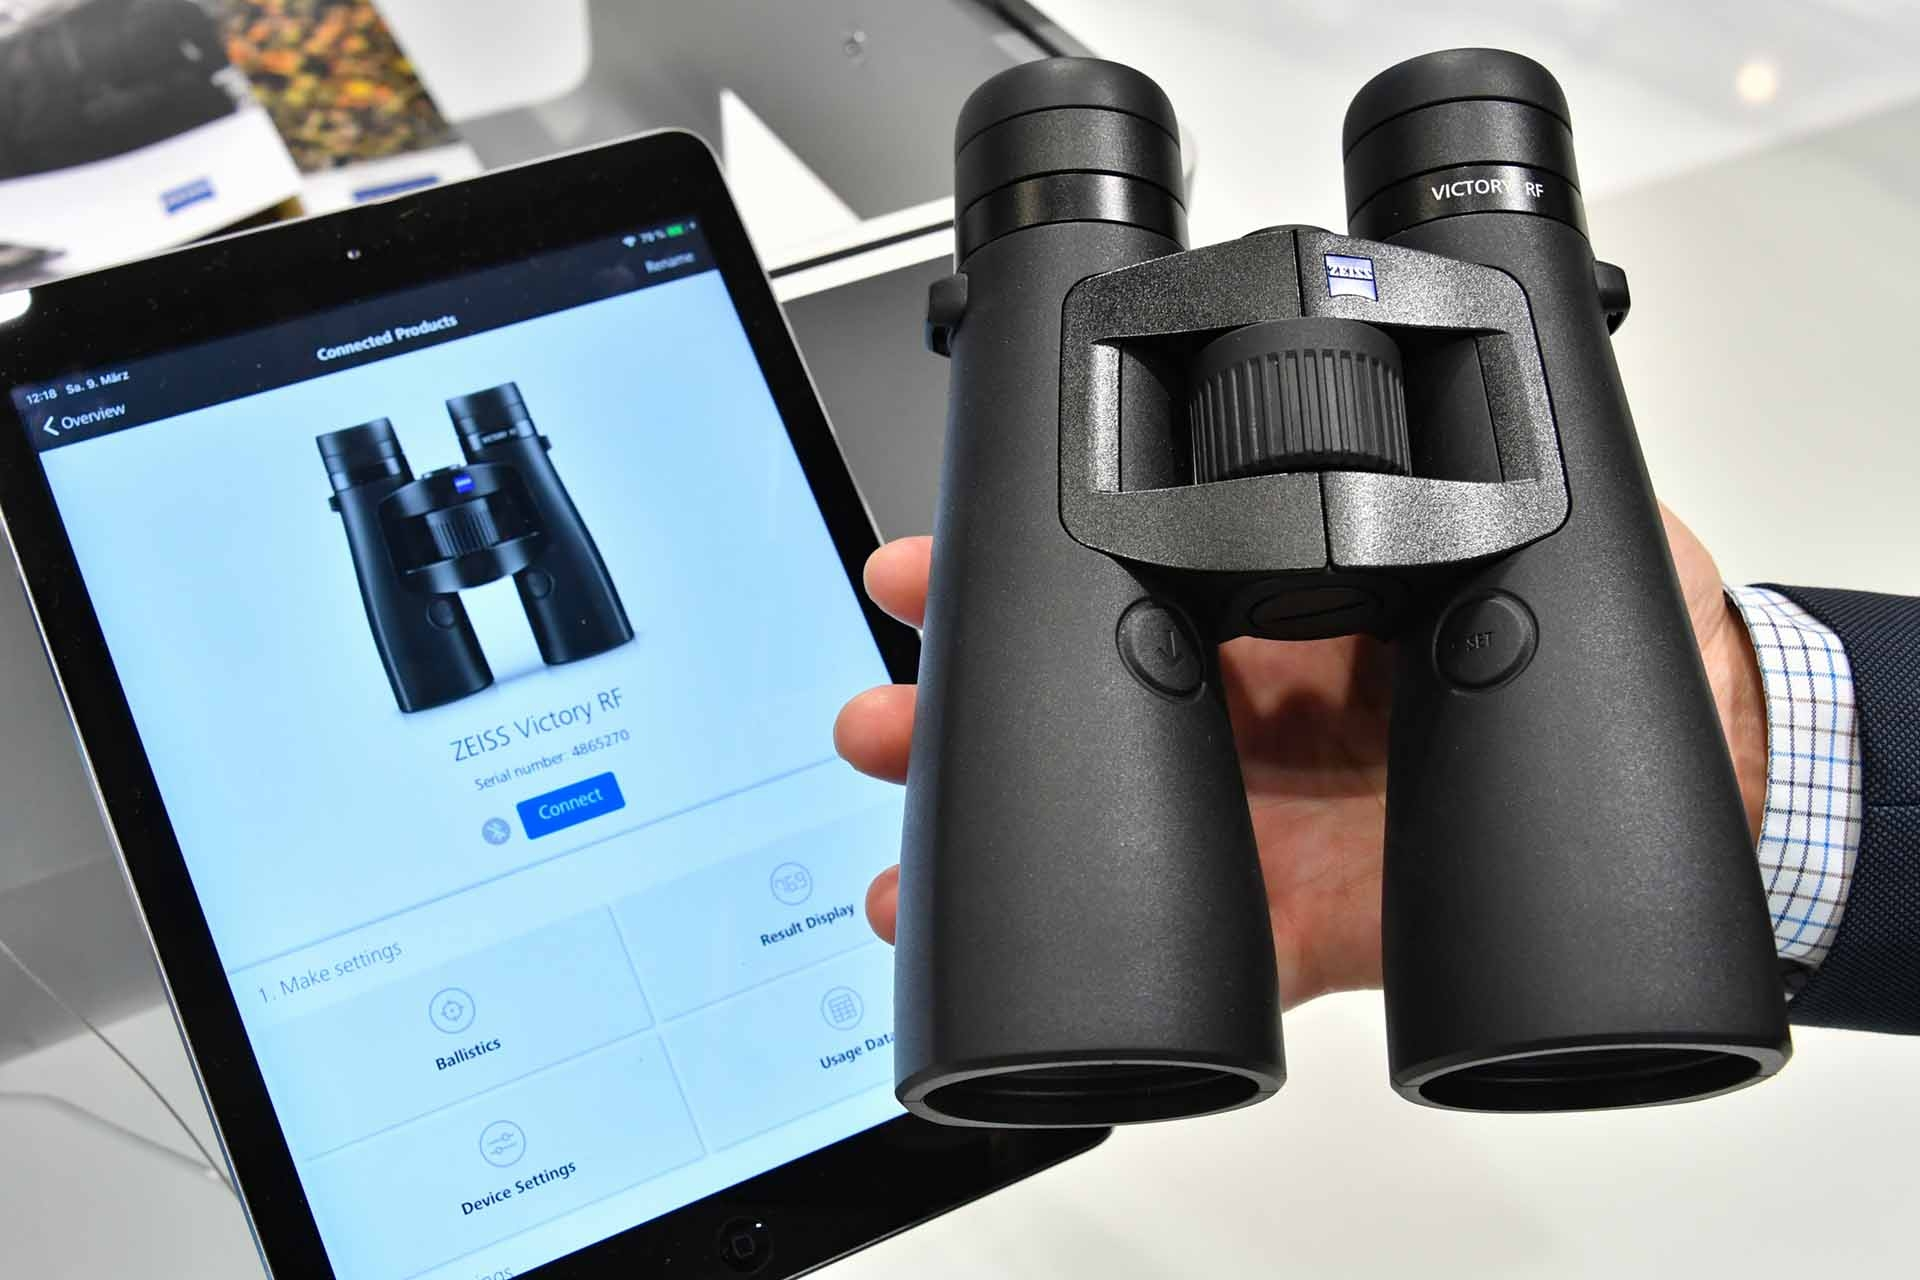 ZEISS Hunting App with Bluetooth connection.